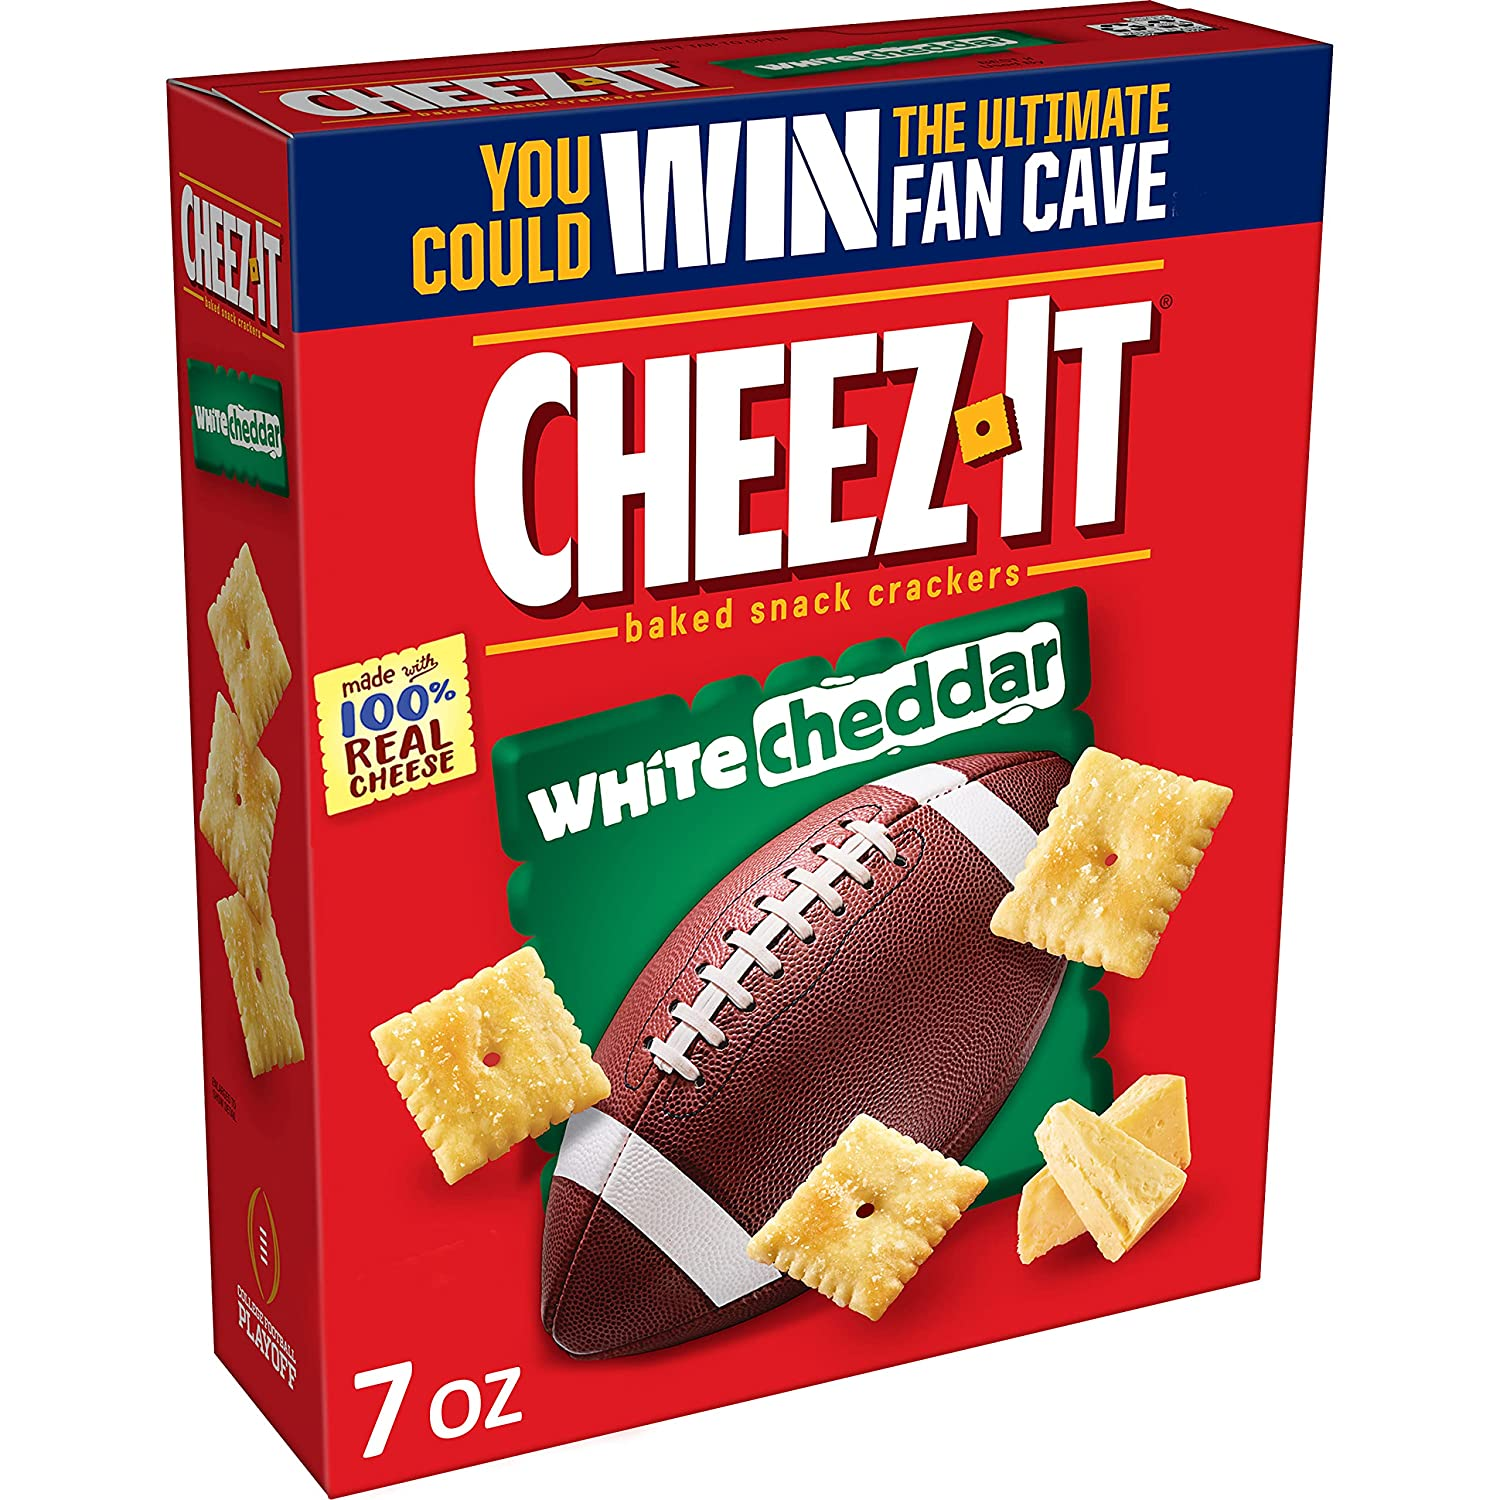 Cheez-It Cheese Crackers, Baked Snack Crackers, Office and Kids Snacks, White Cheddar, 7oz Box (1 Box)